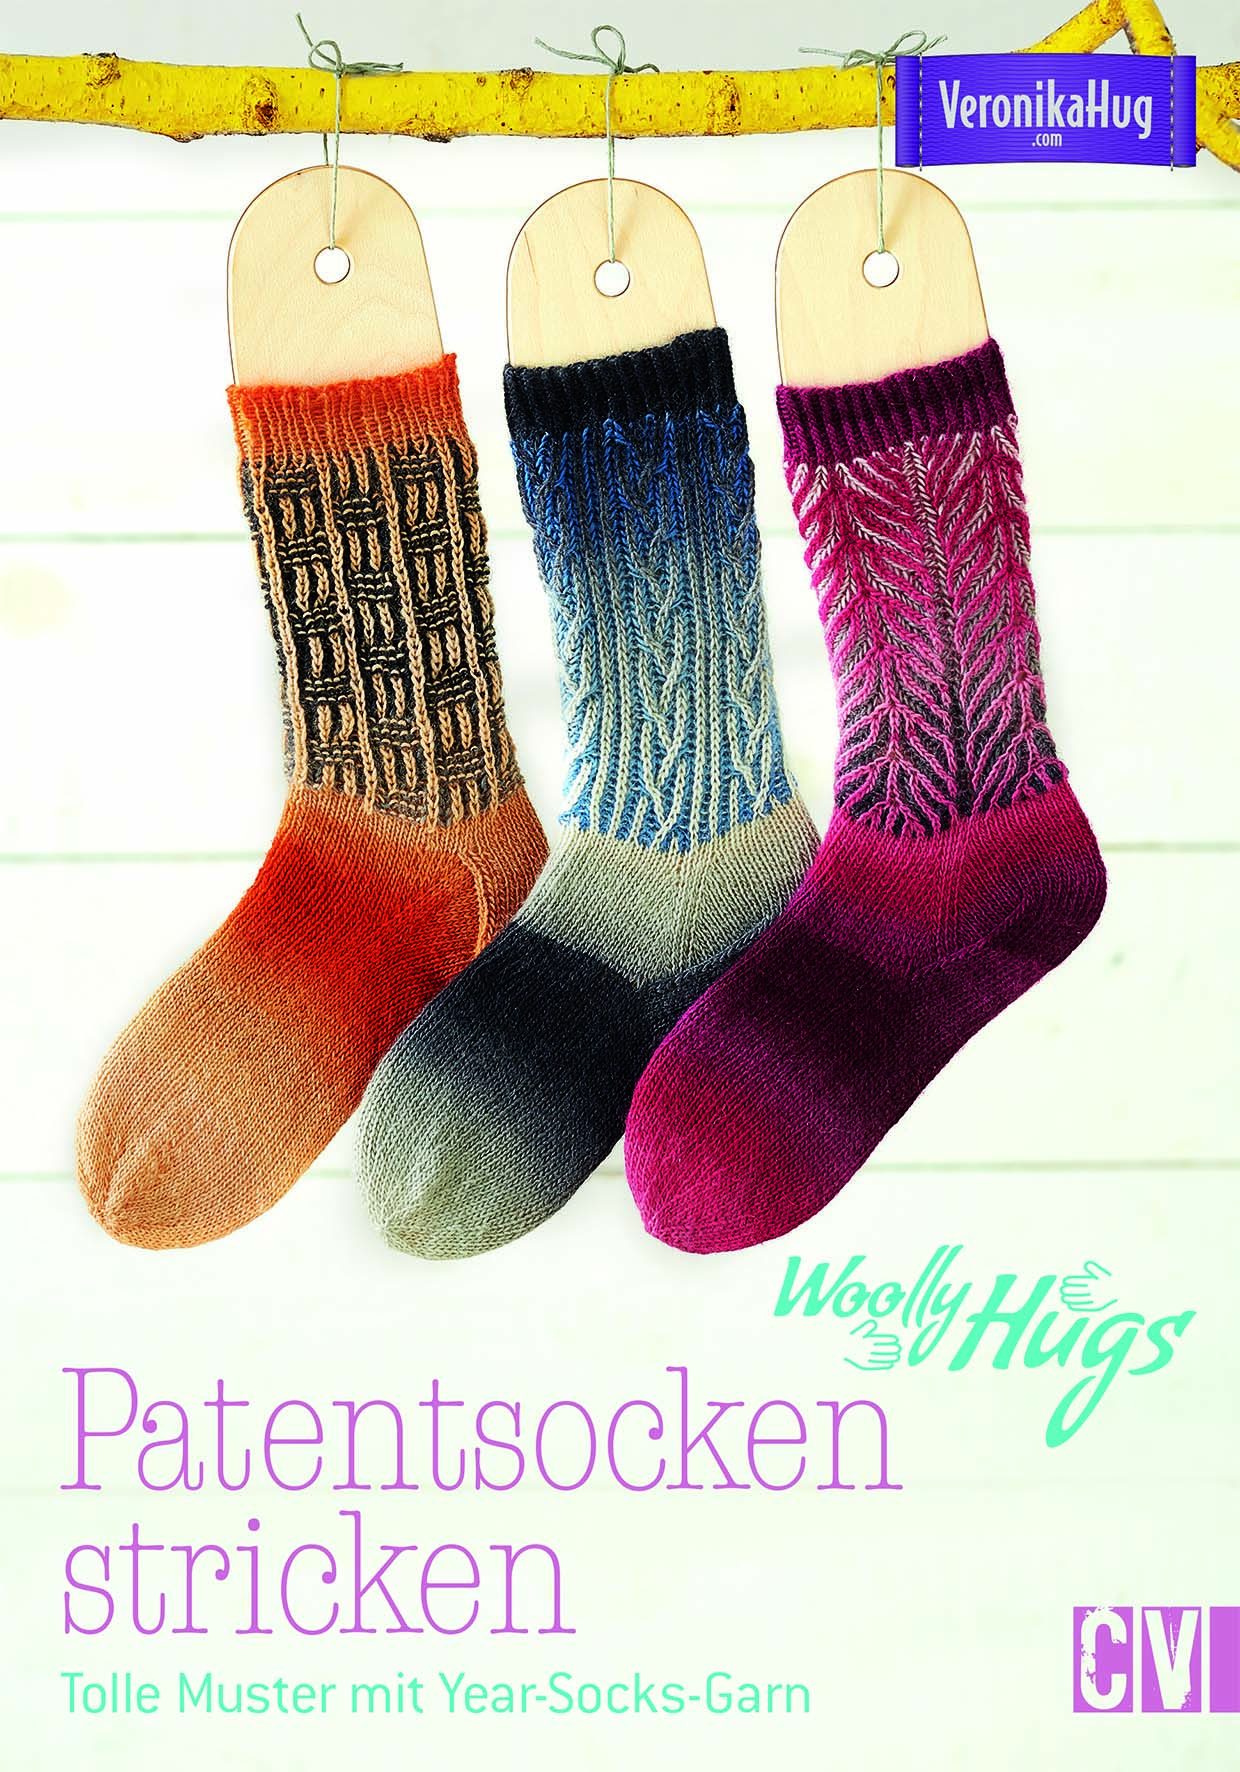 CV 6534 Wolly Hugs Patentsocken stricken